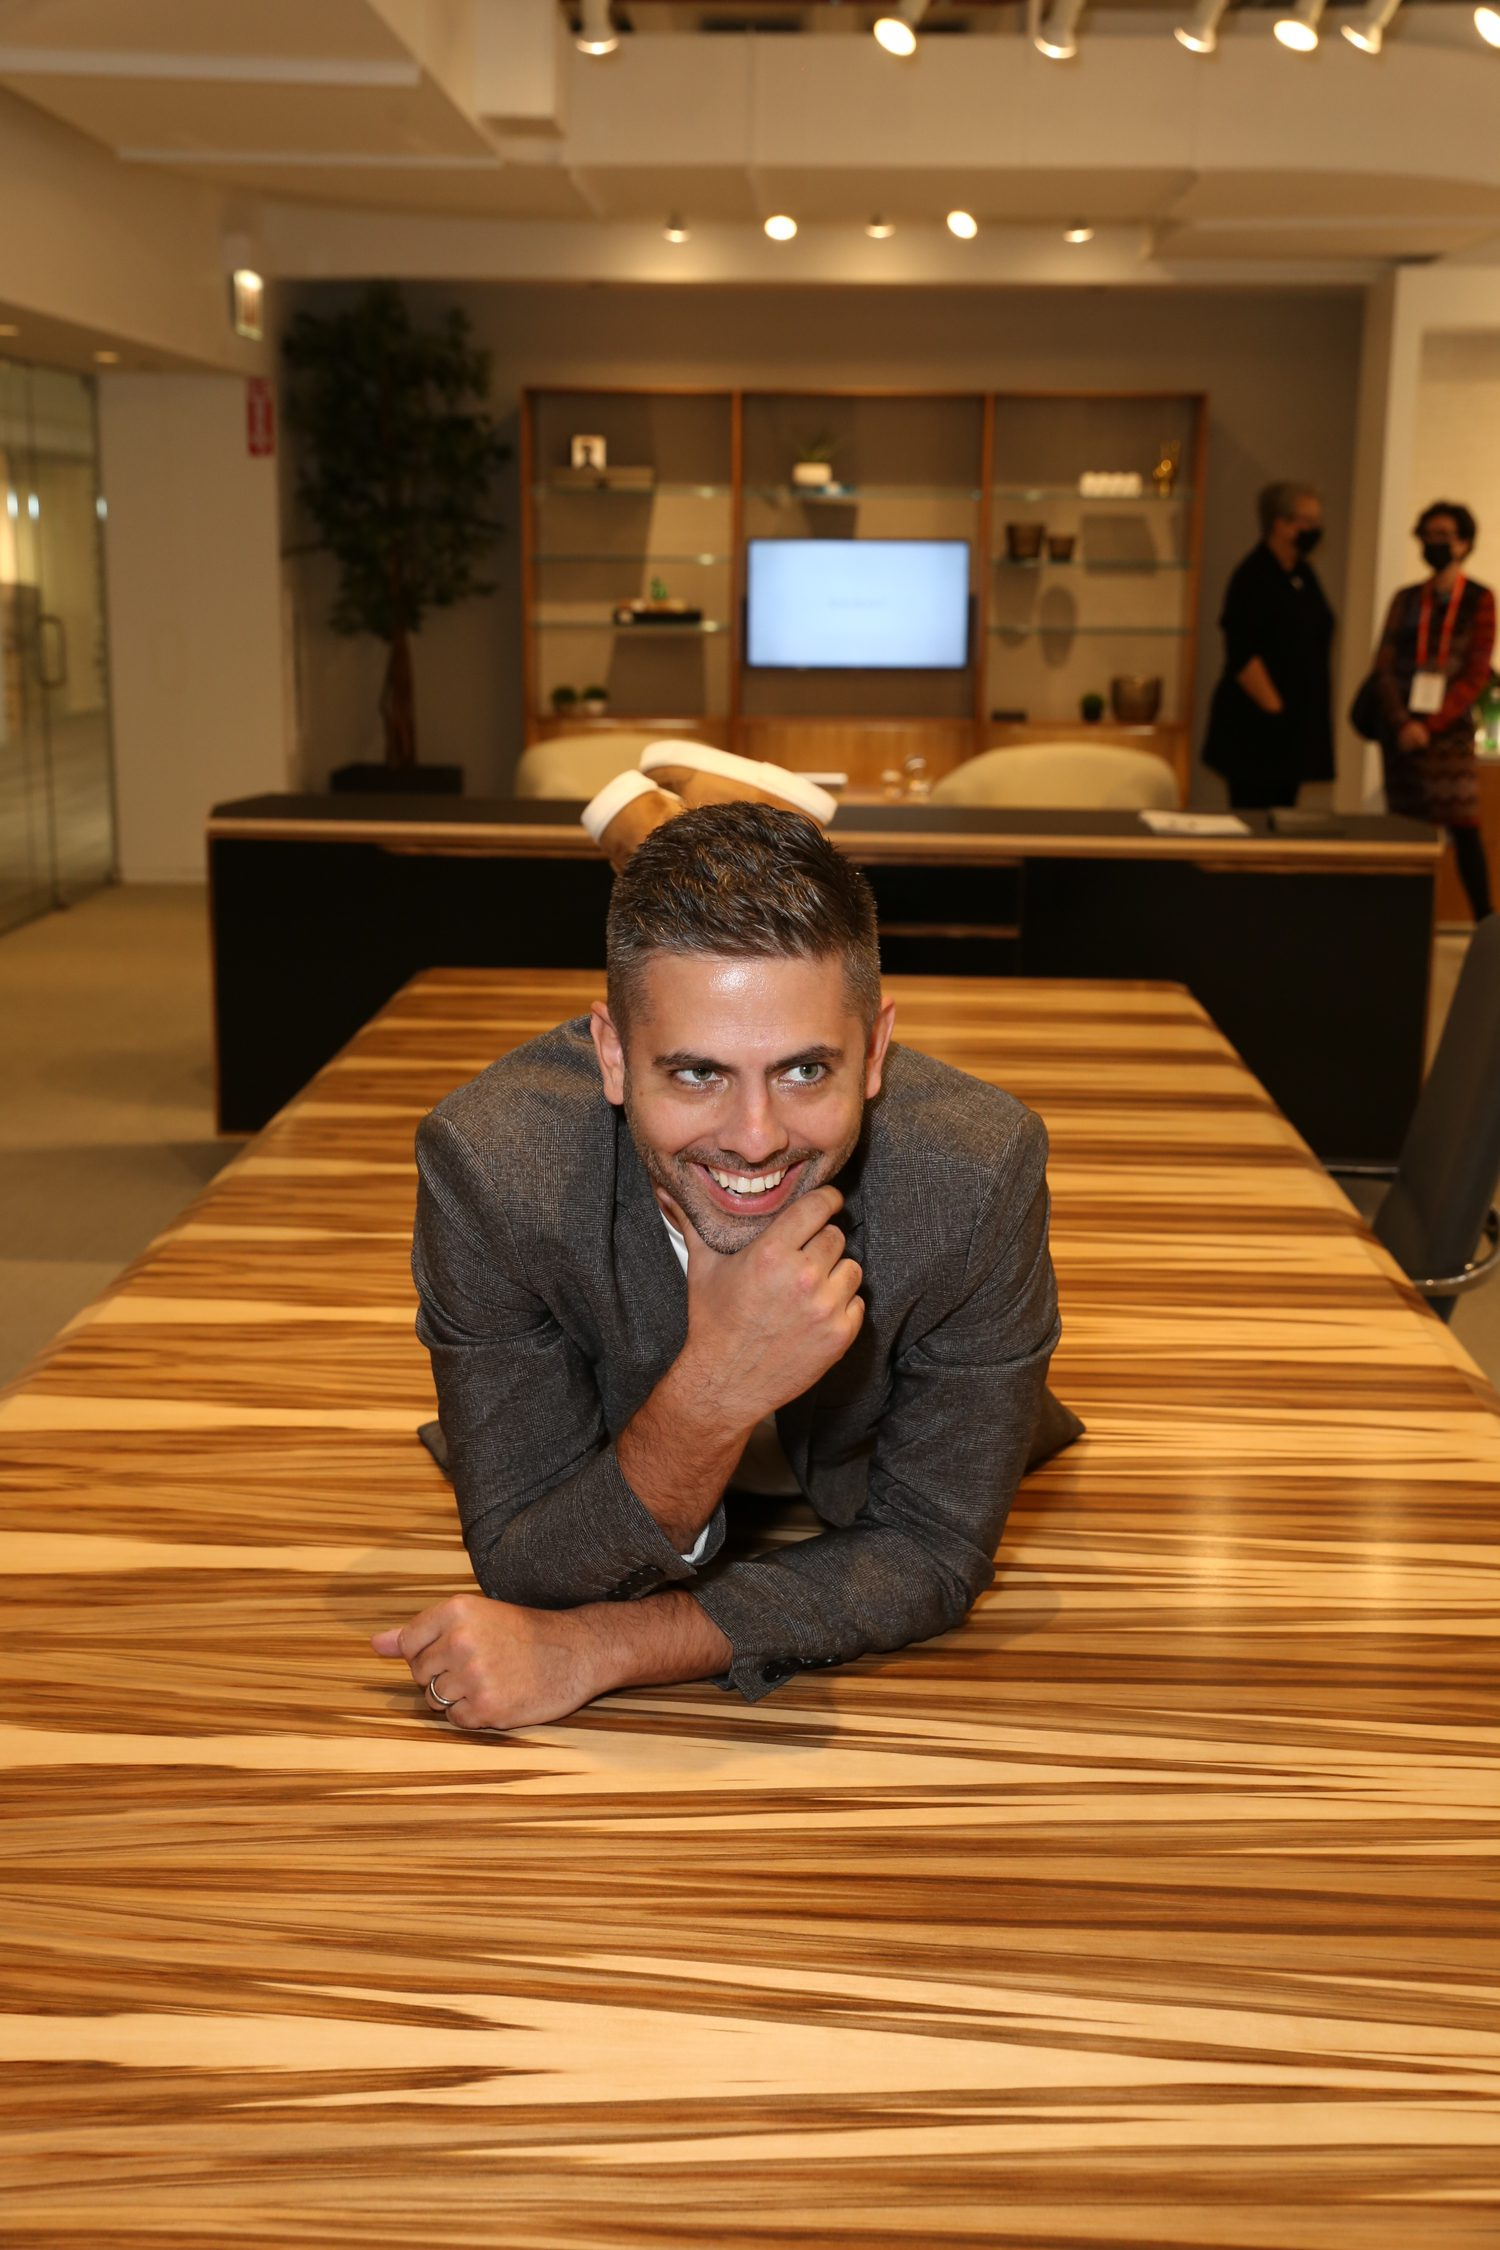 Andrew DeYoung of Nucraft with the Ascari Conference table.